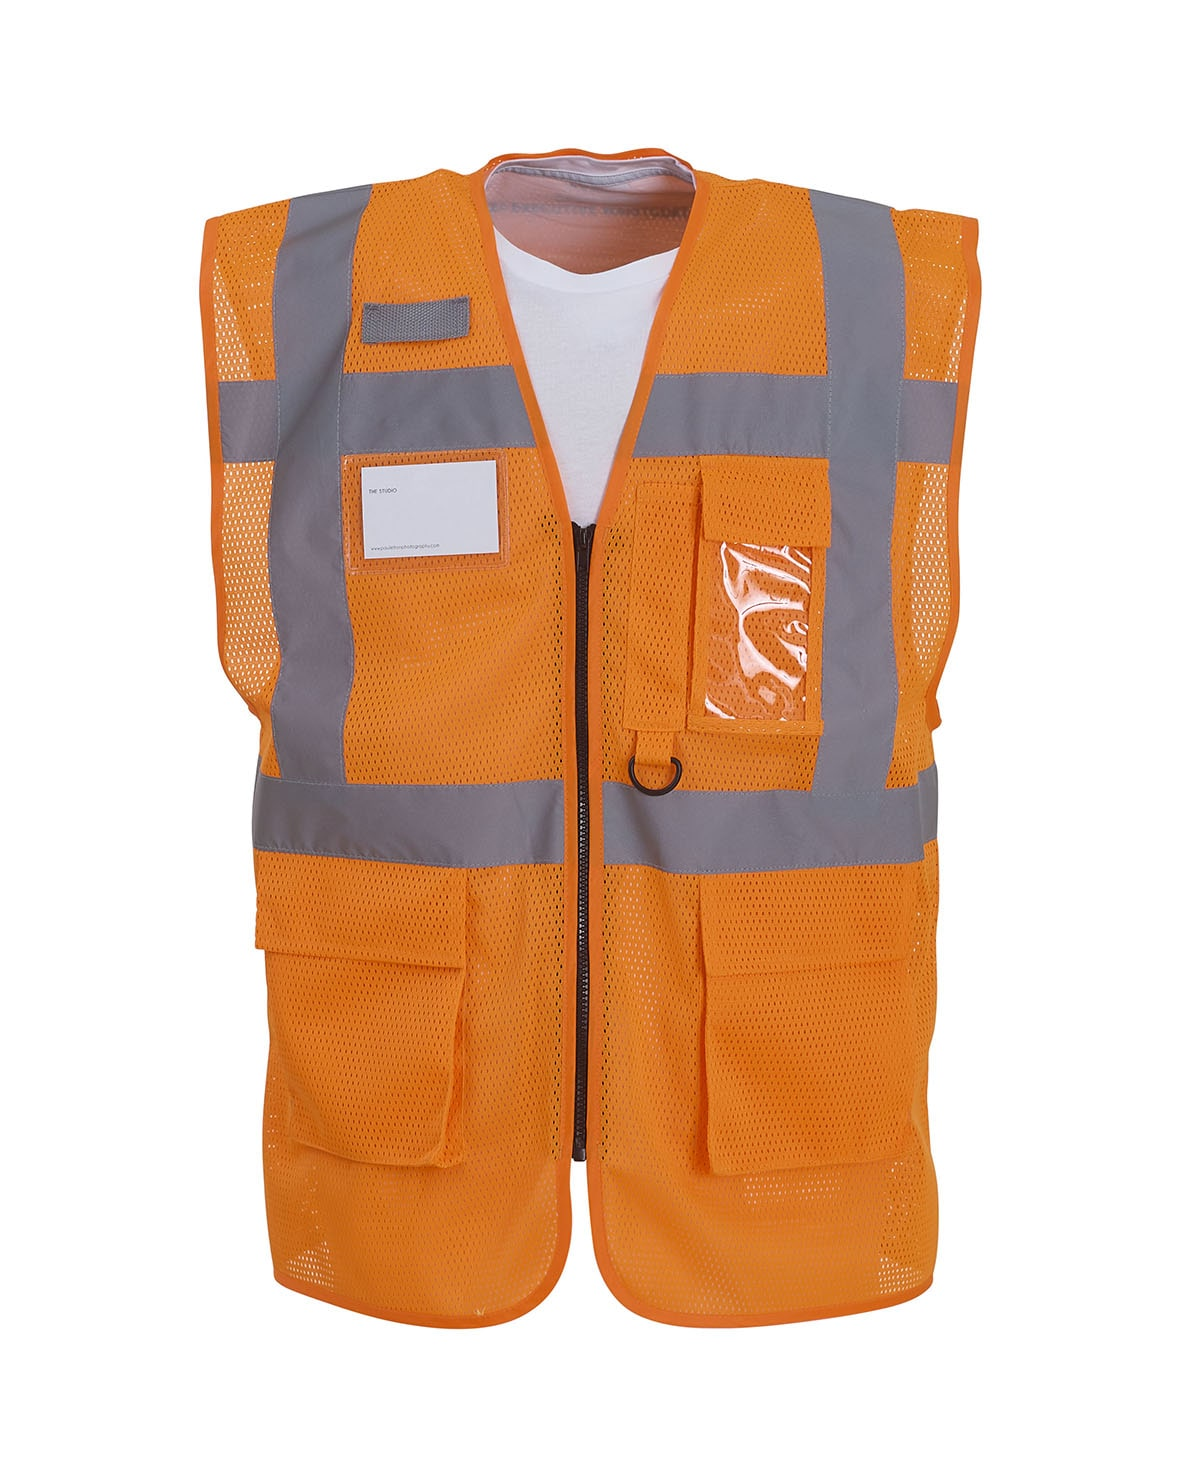 A complete selection of High Visibility Workwear from Overtrousers to Jackets that can be Branded with Your Company Logo